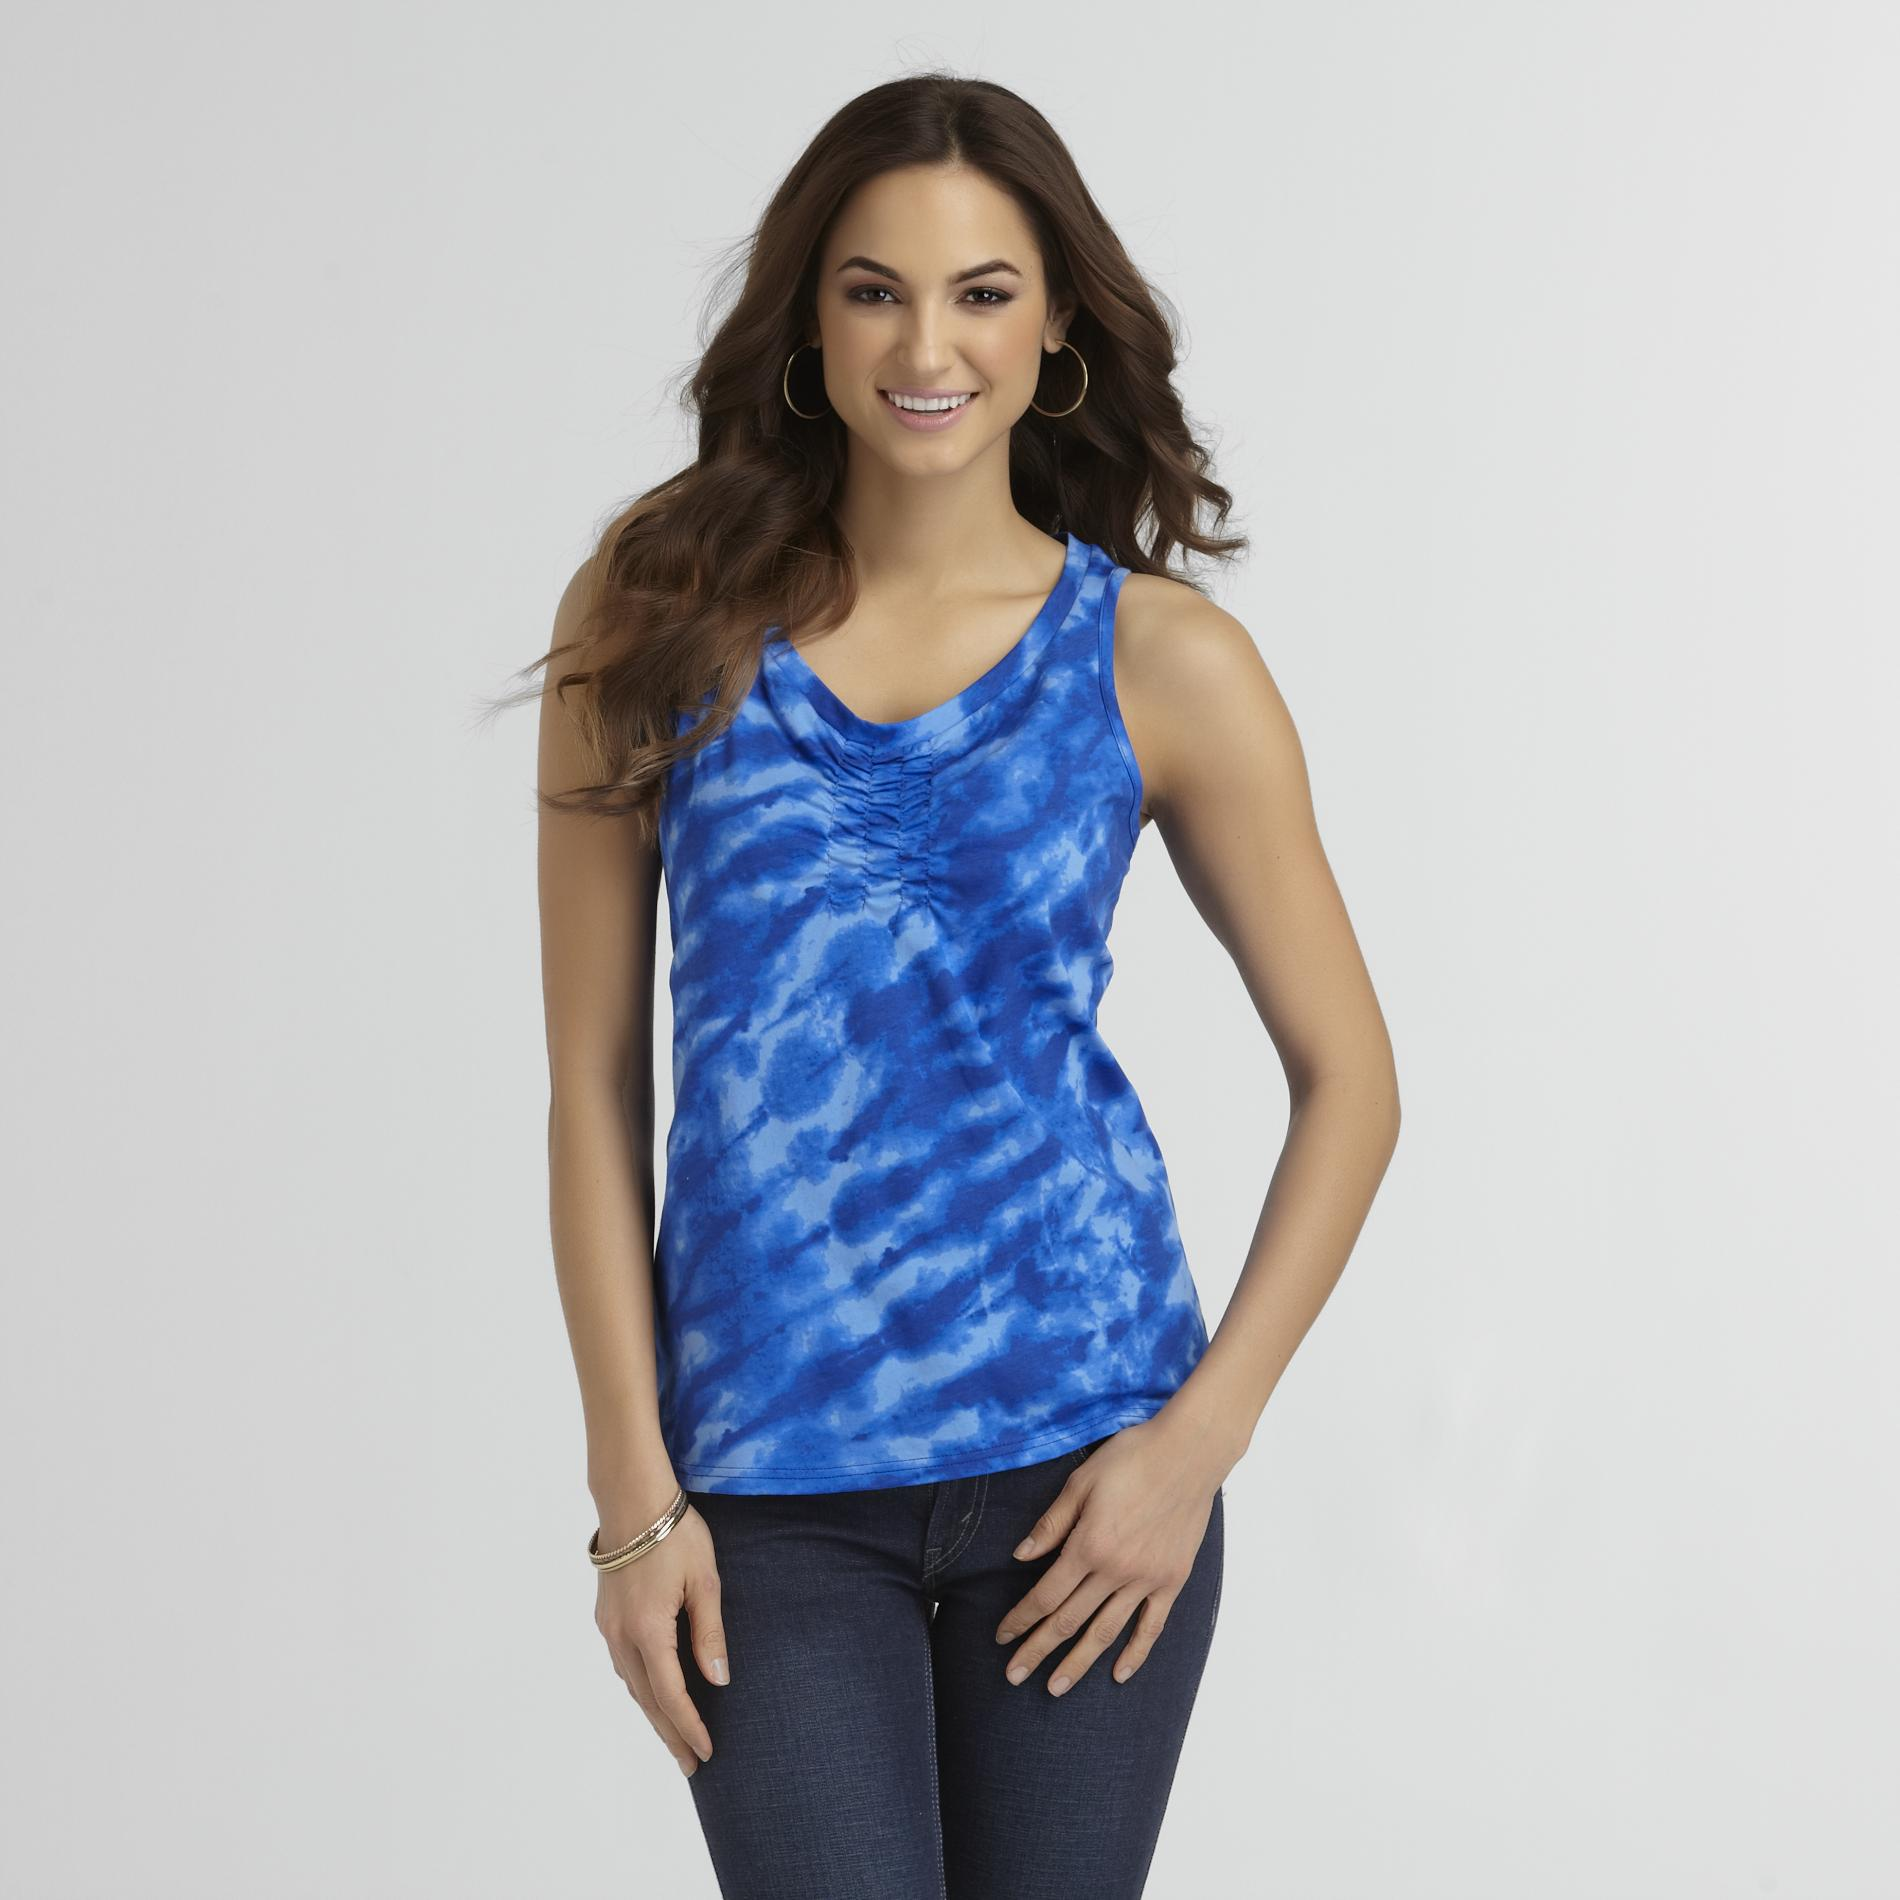 Basic Editions Women's Smocked Tank Top at Kmart.com